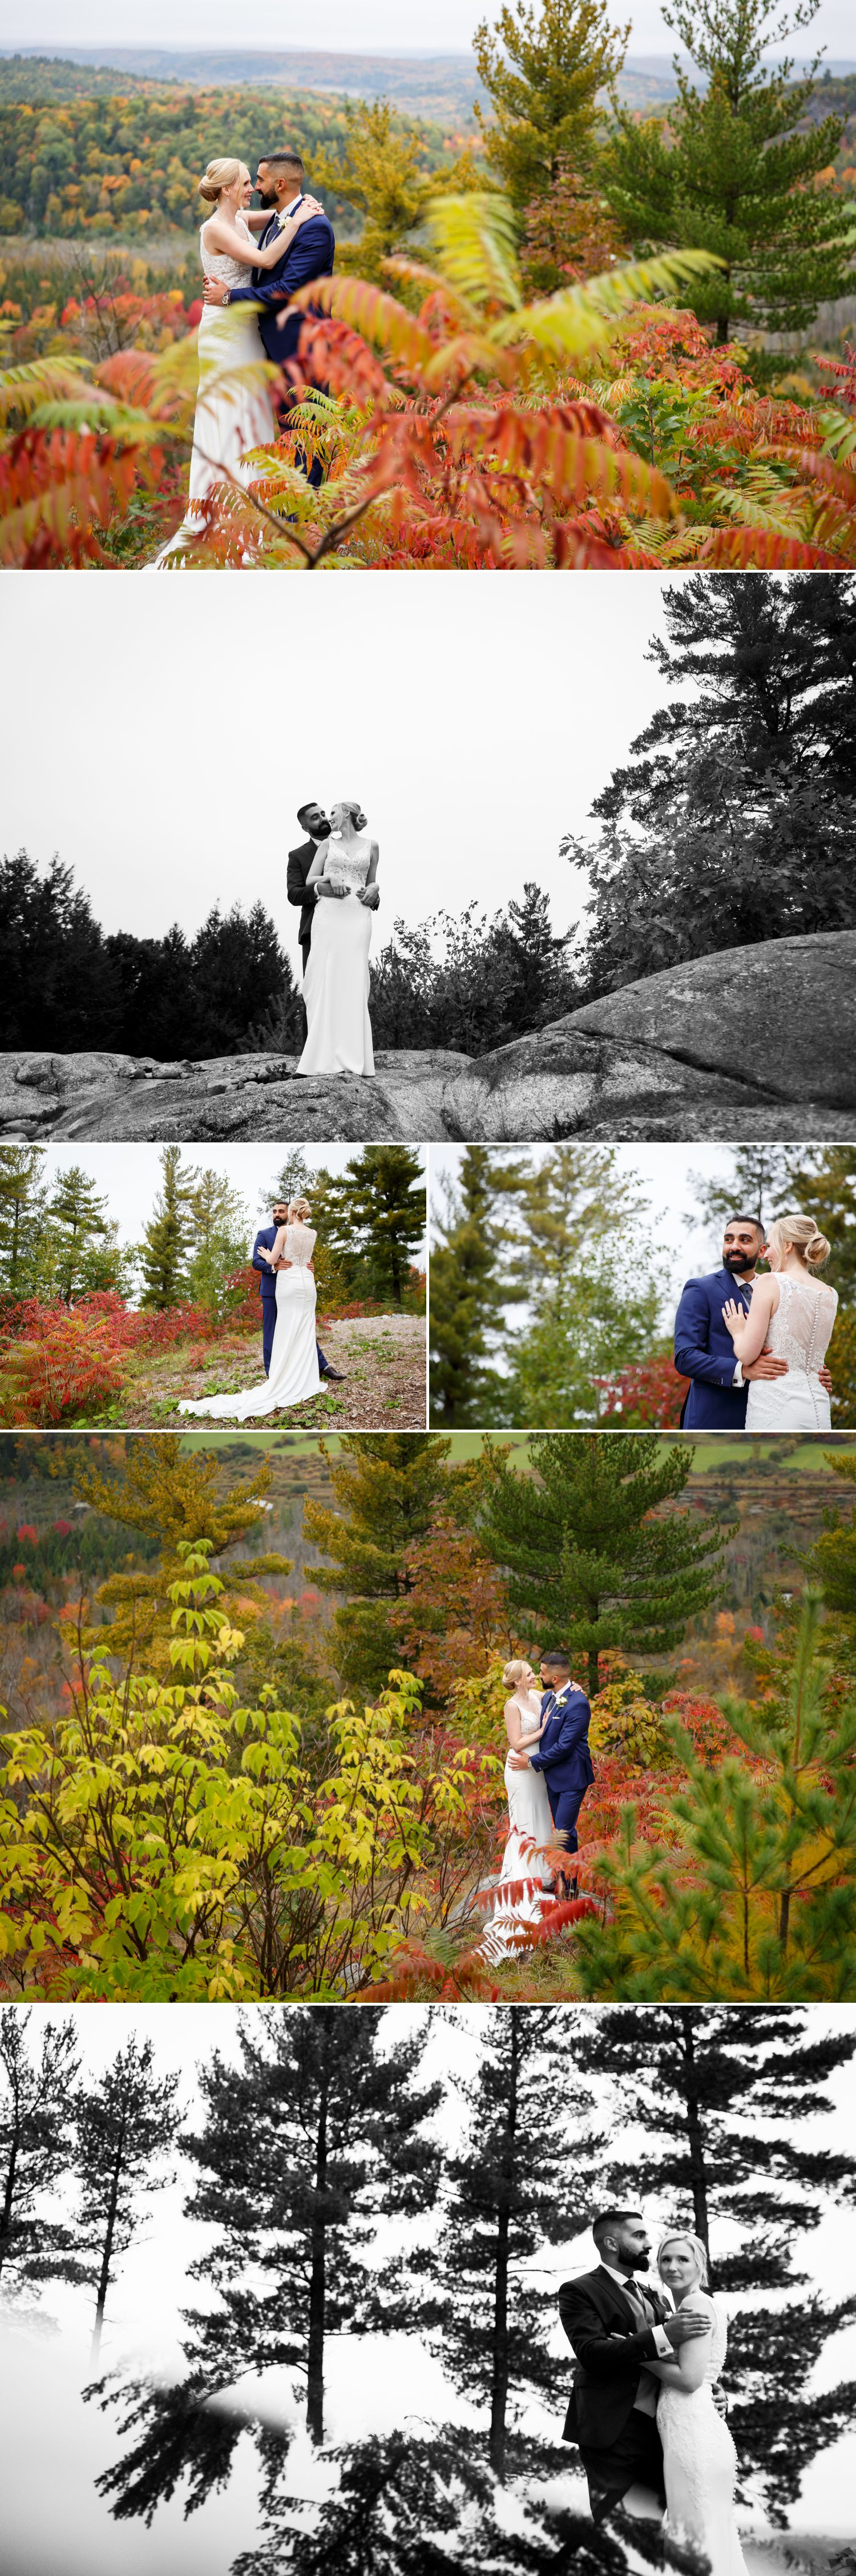 Portraits of the Bride and Groom taken outside in the fall at Le Belvedere